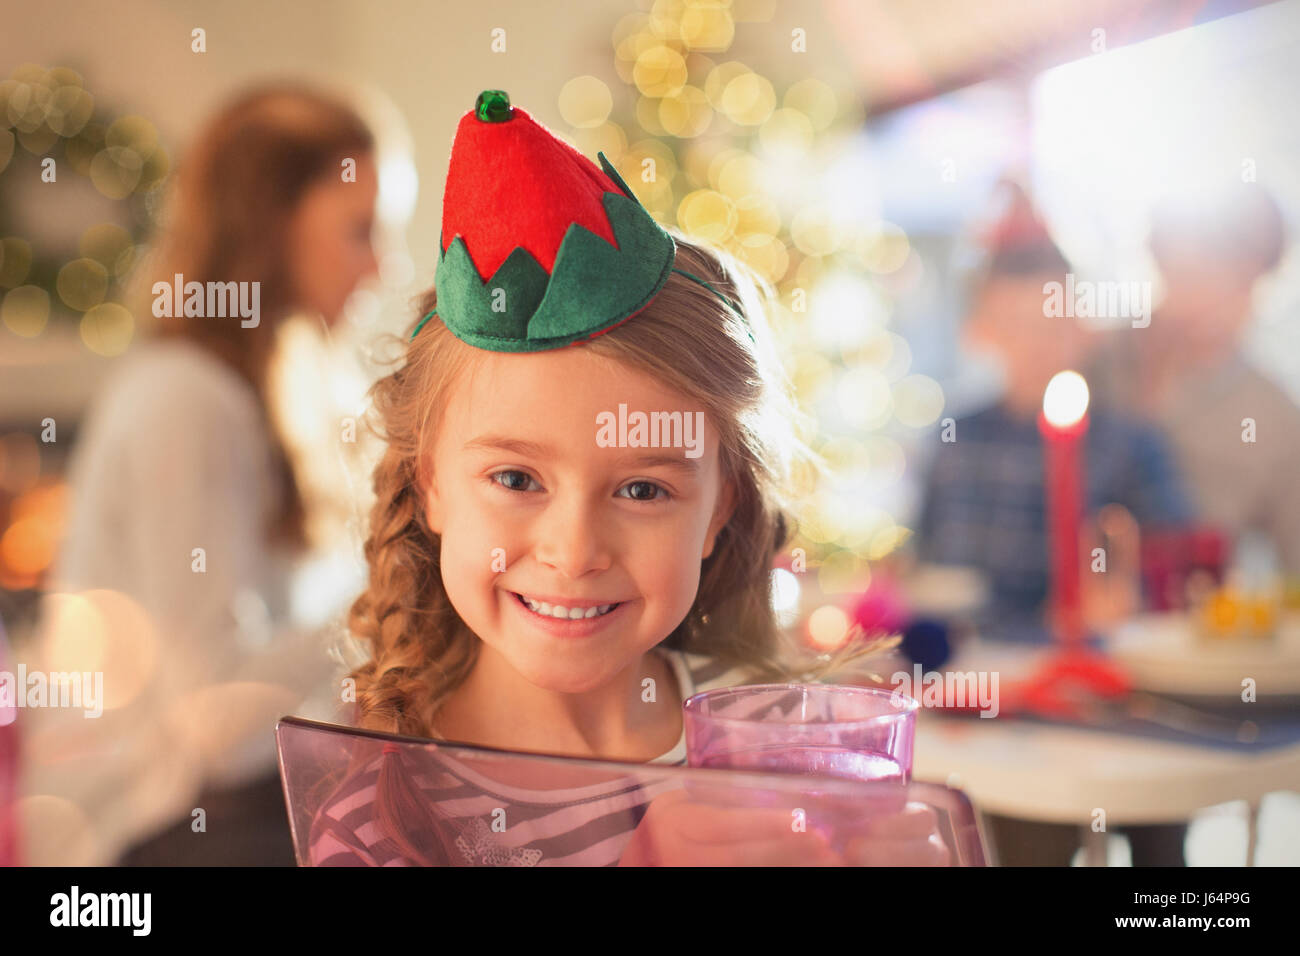 3feda671d2bb2 Paper Crown Stock Photos   Paper Crown Stock Images - Page 3 - Alamy